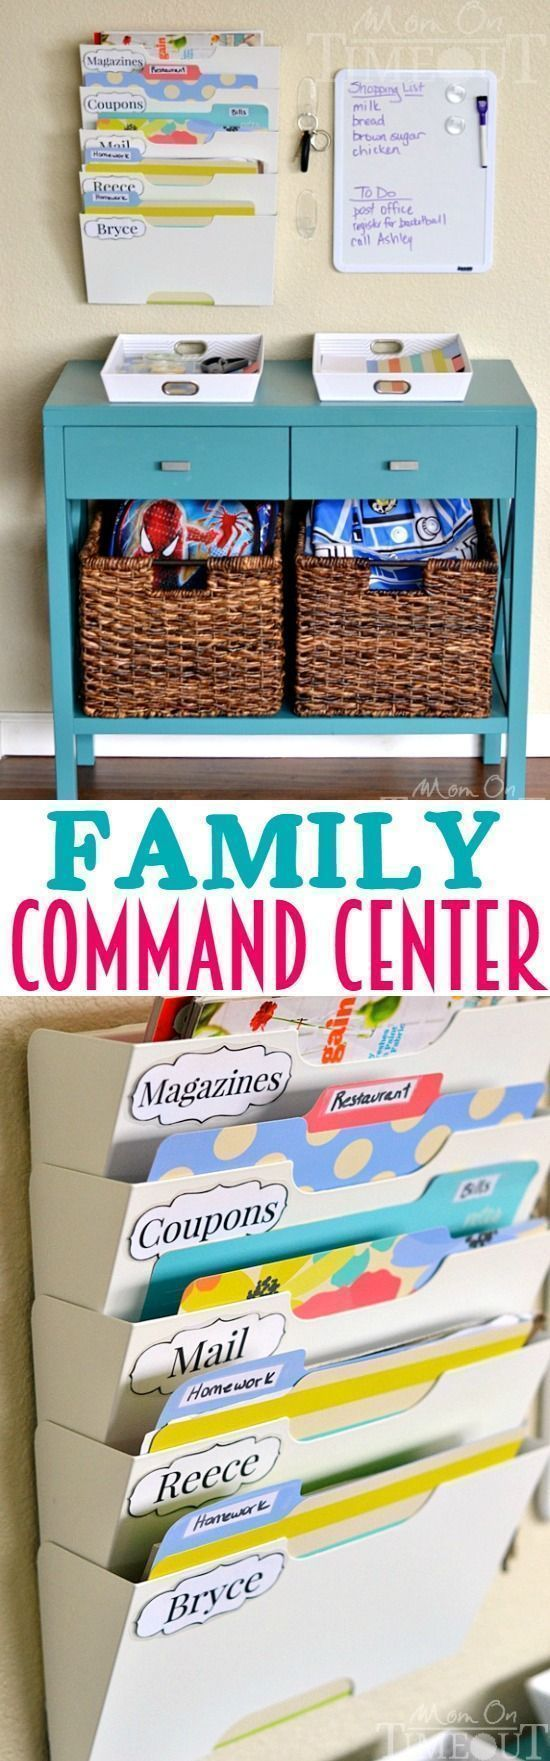 Banish the clutter and get the whole family organized with this DIY Family Command Center! | http://MomOnTimeout.com #organized Organizing on a budget